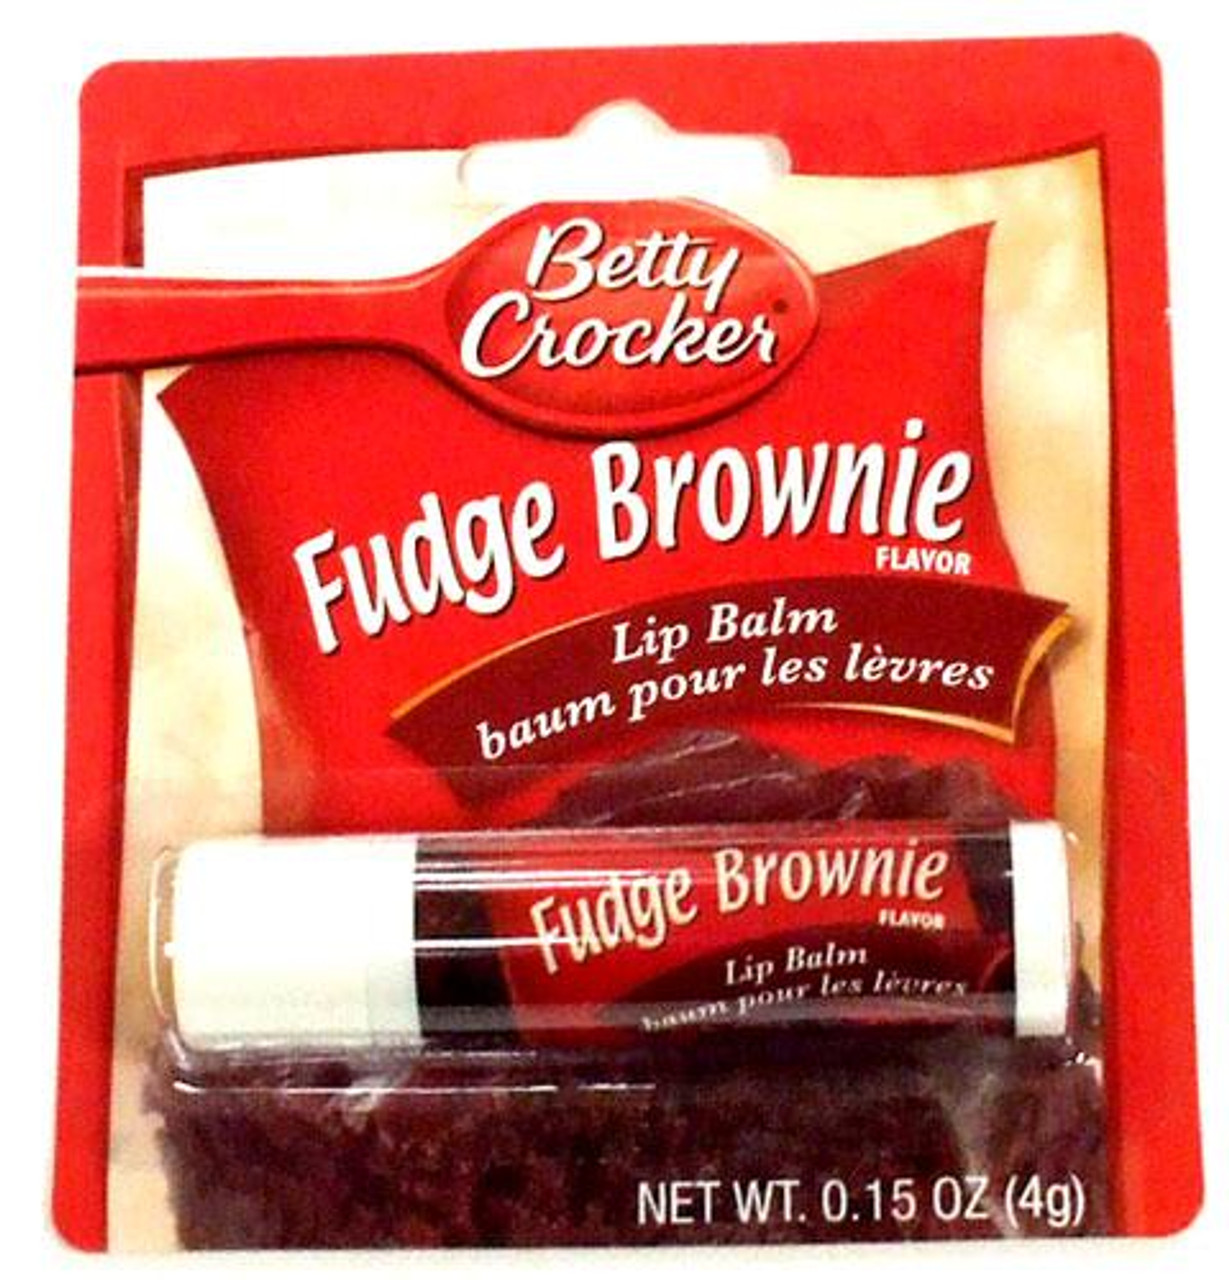 Betty Crocker Fudge Brownie Lip Balm